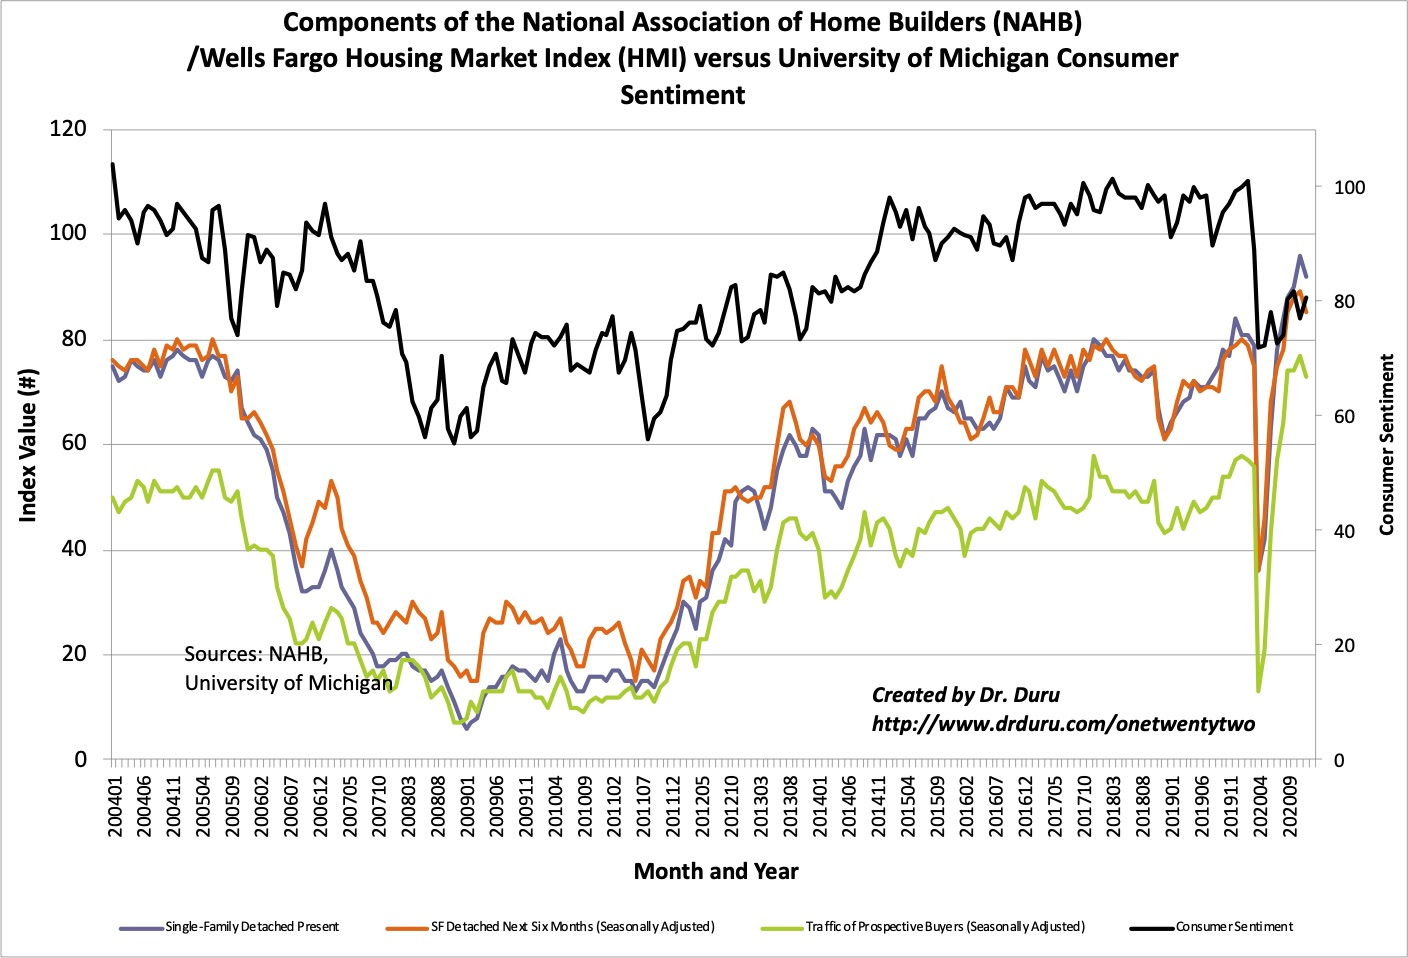 The components of the Housing Market Index (HMI) pulled back slightly while consumer sentiment rebounded a bit.